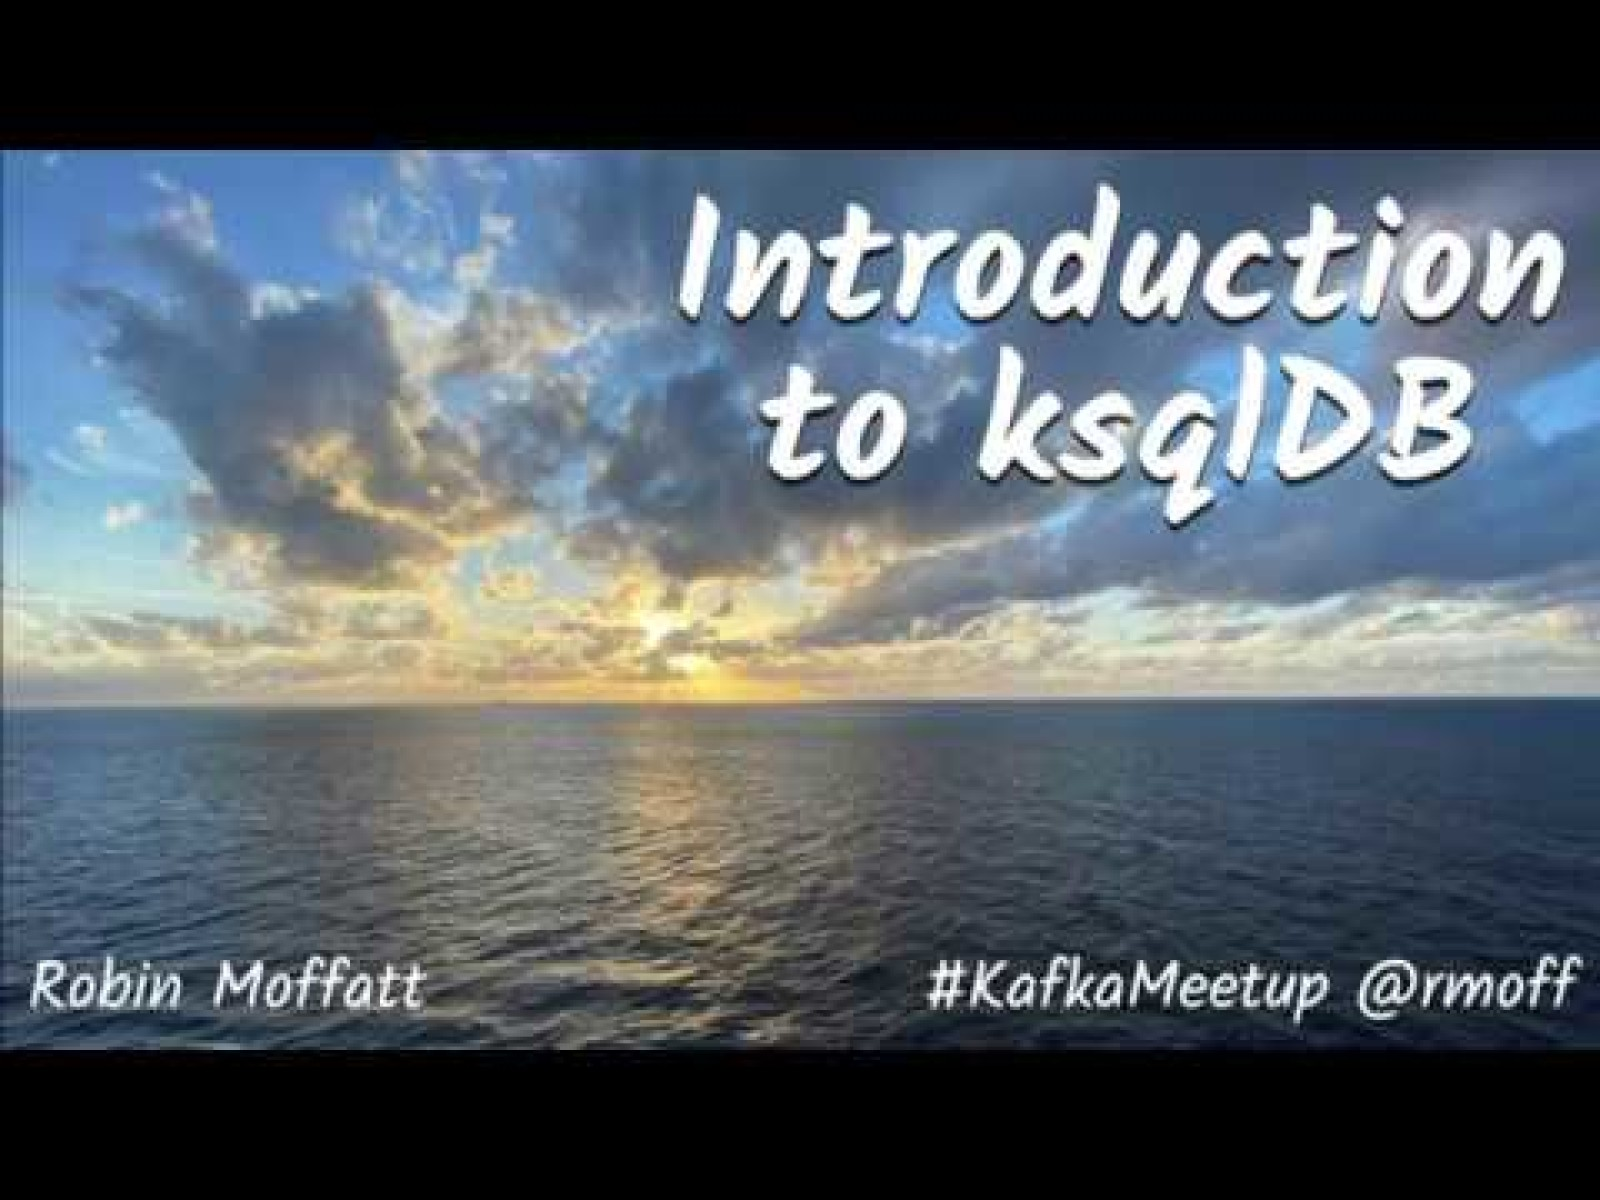 Introduction to ksqlDB